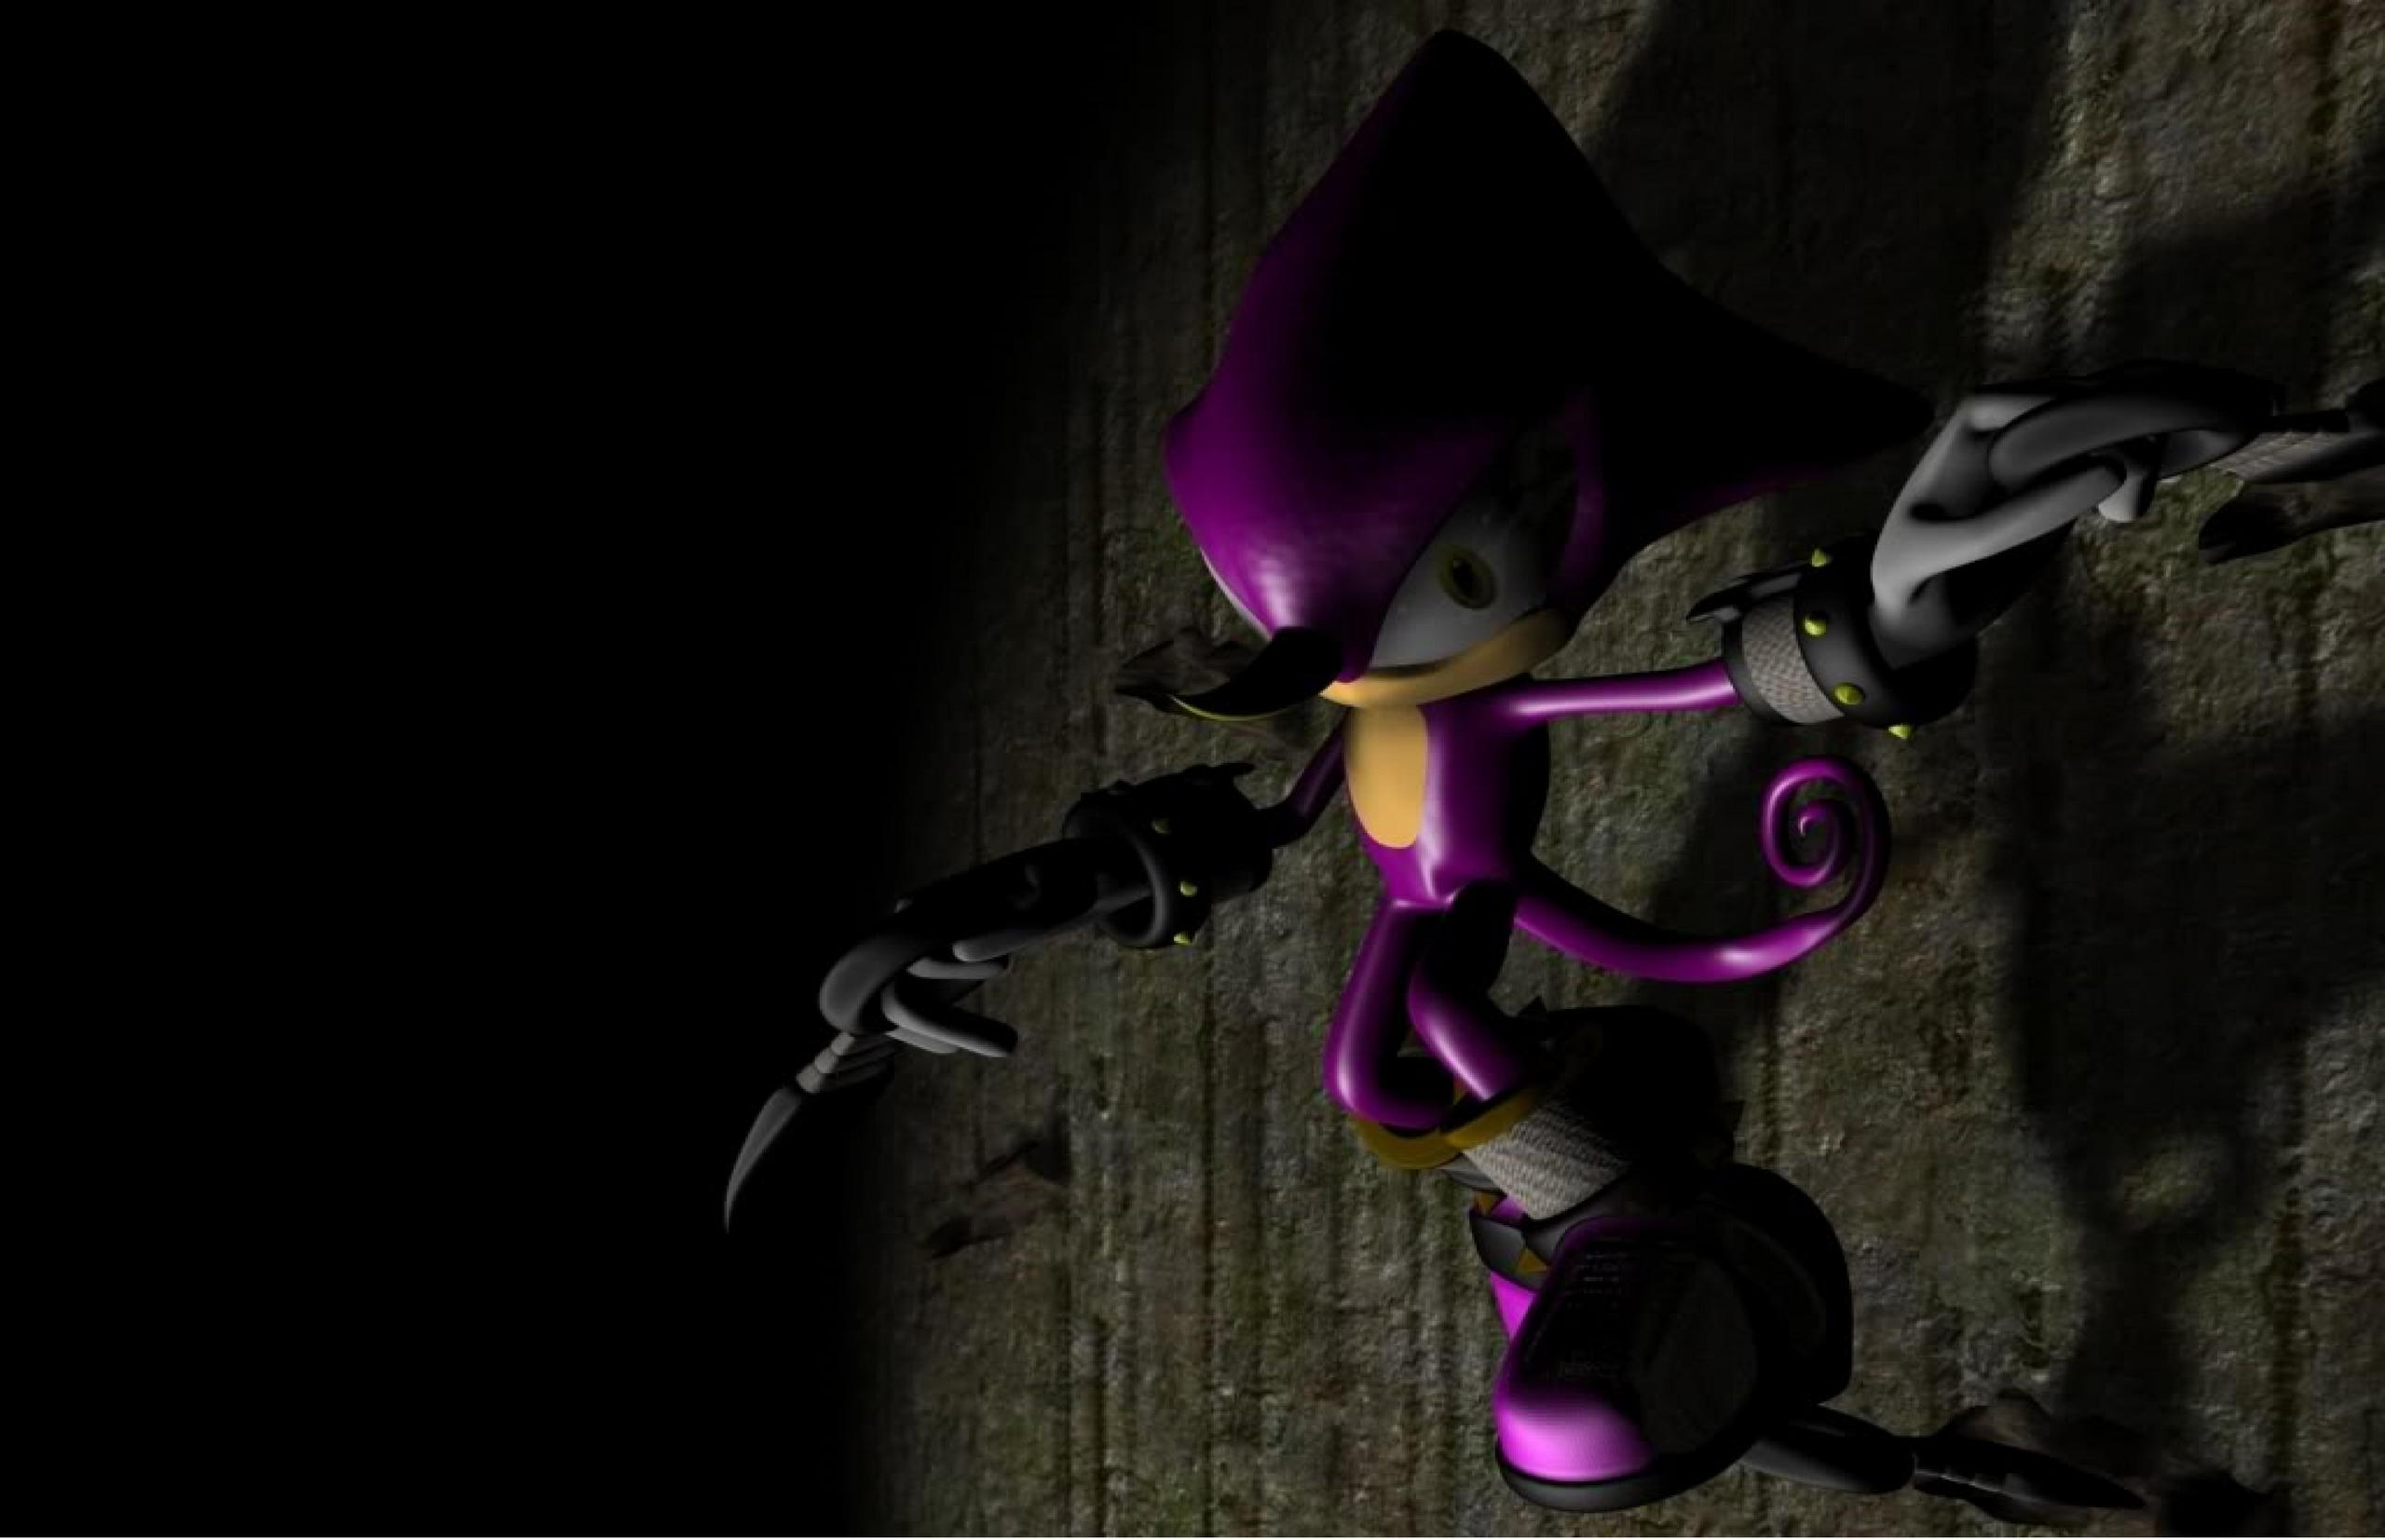 espio the chameleon wallpaper - photo #19